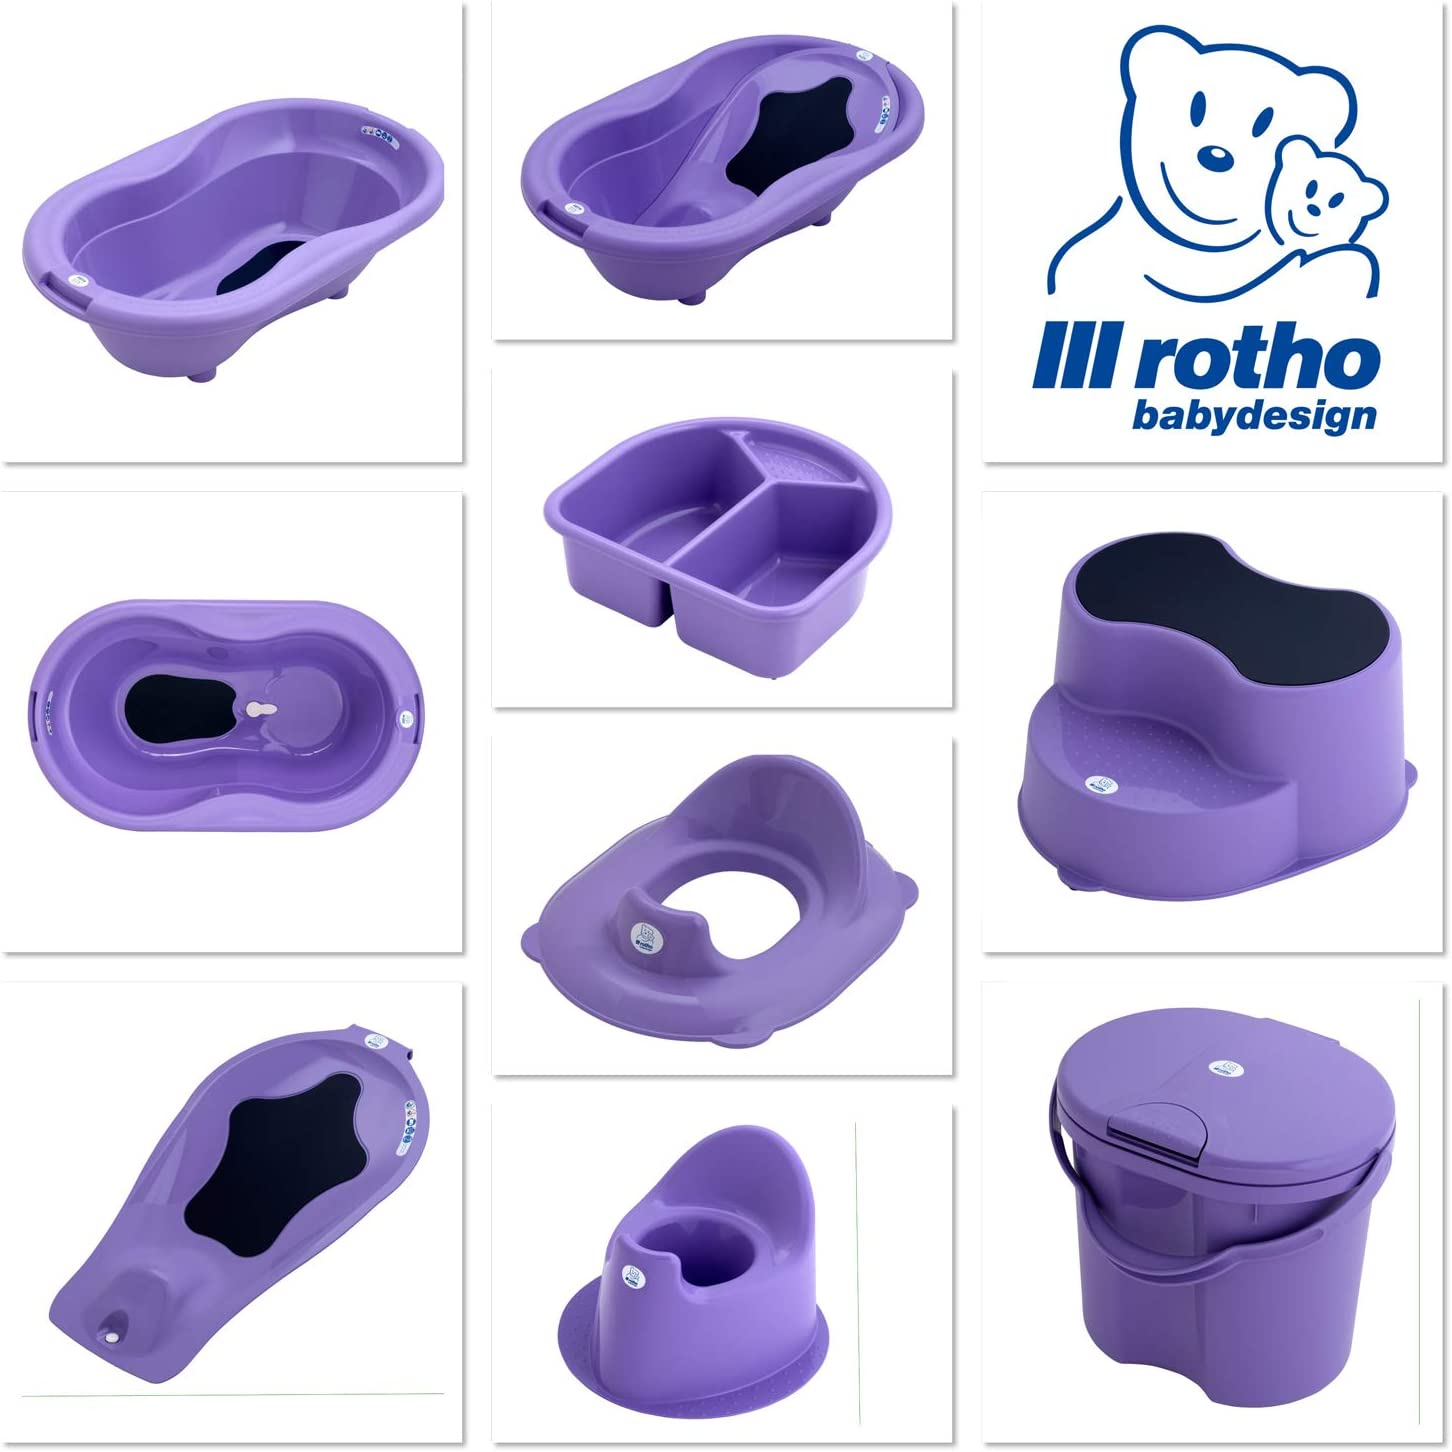 200040235 TOP Curacao Blue From 18 Months Rotho Babydesign TOP Toilet Seat Reducer Green-Blue